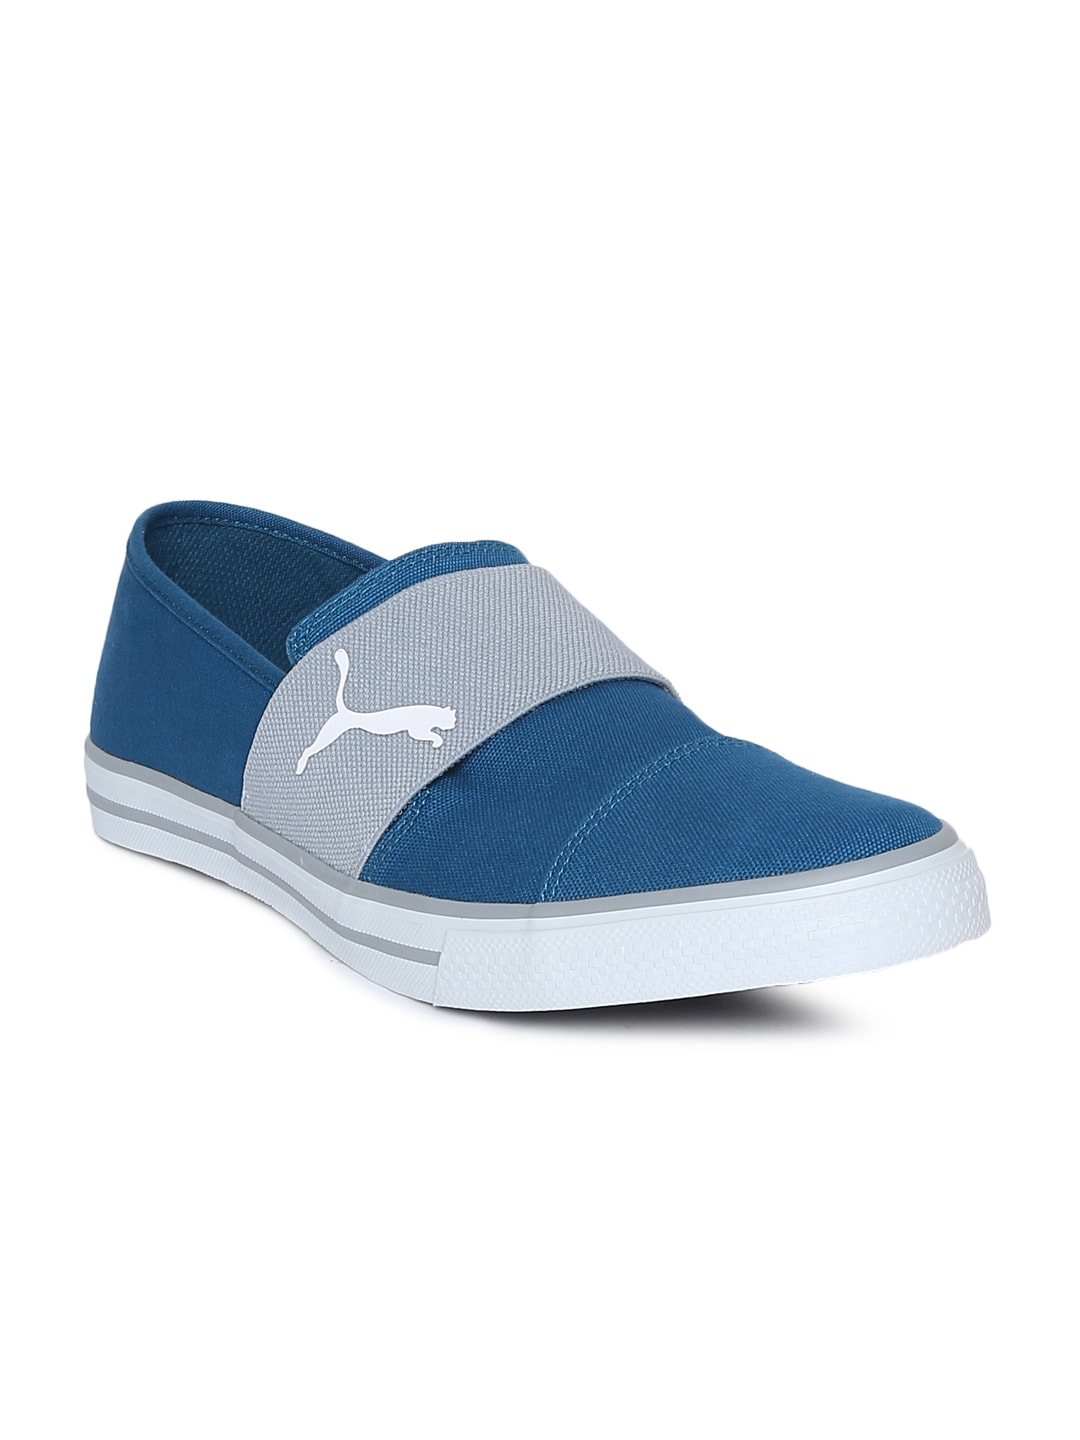 ac10a64f65e Puma Slip On Shoes Casual - Buy Puma Slip On Shoes Casual online in India